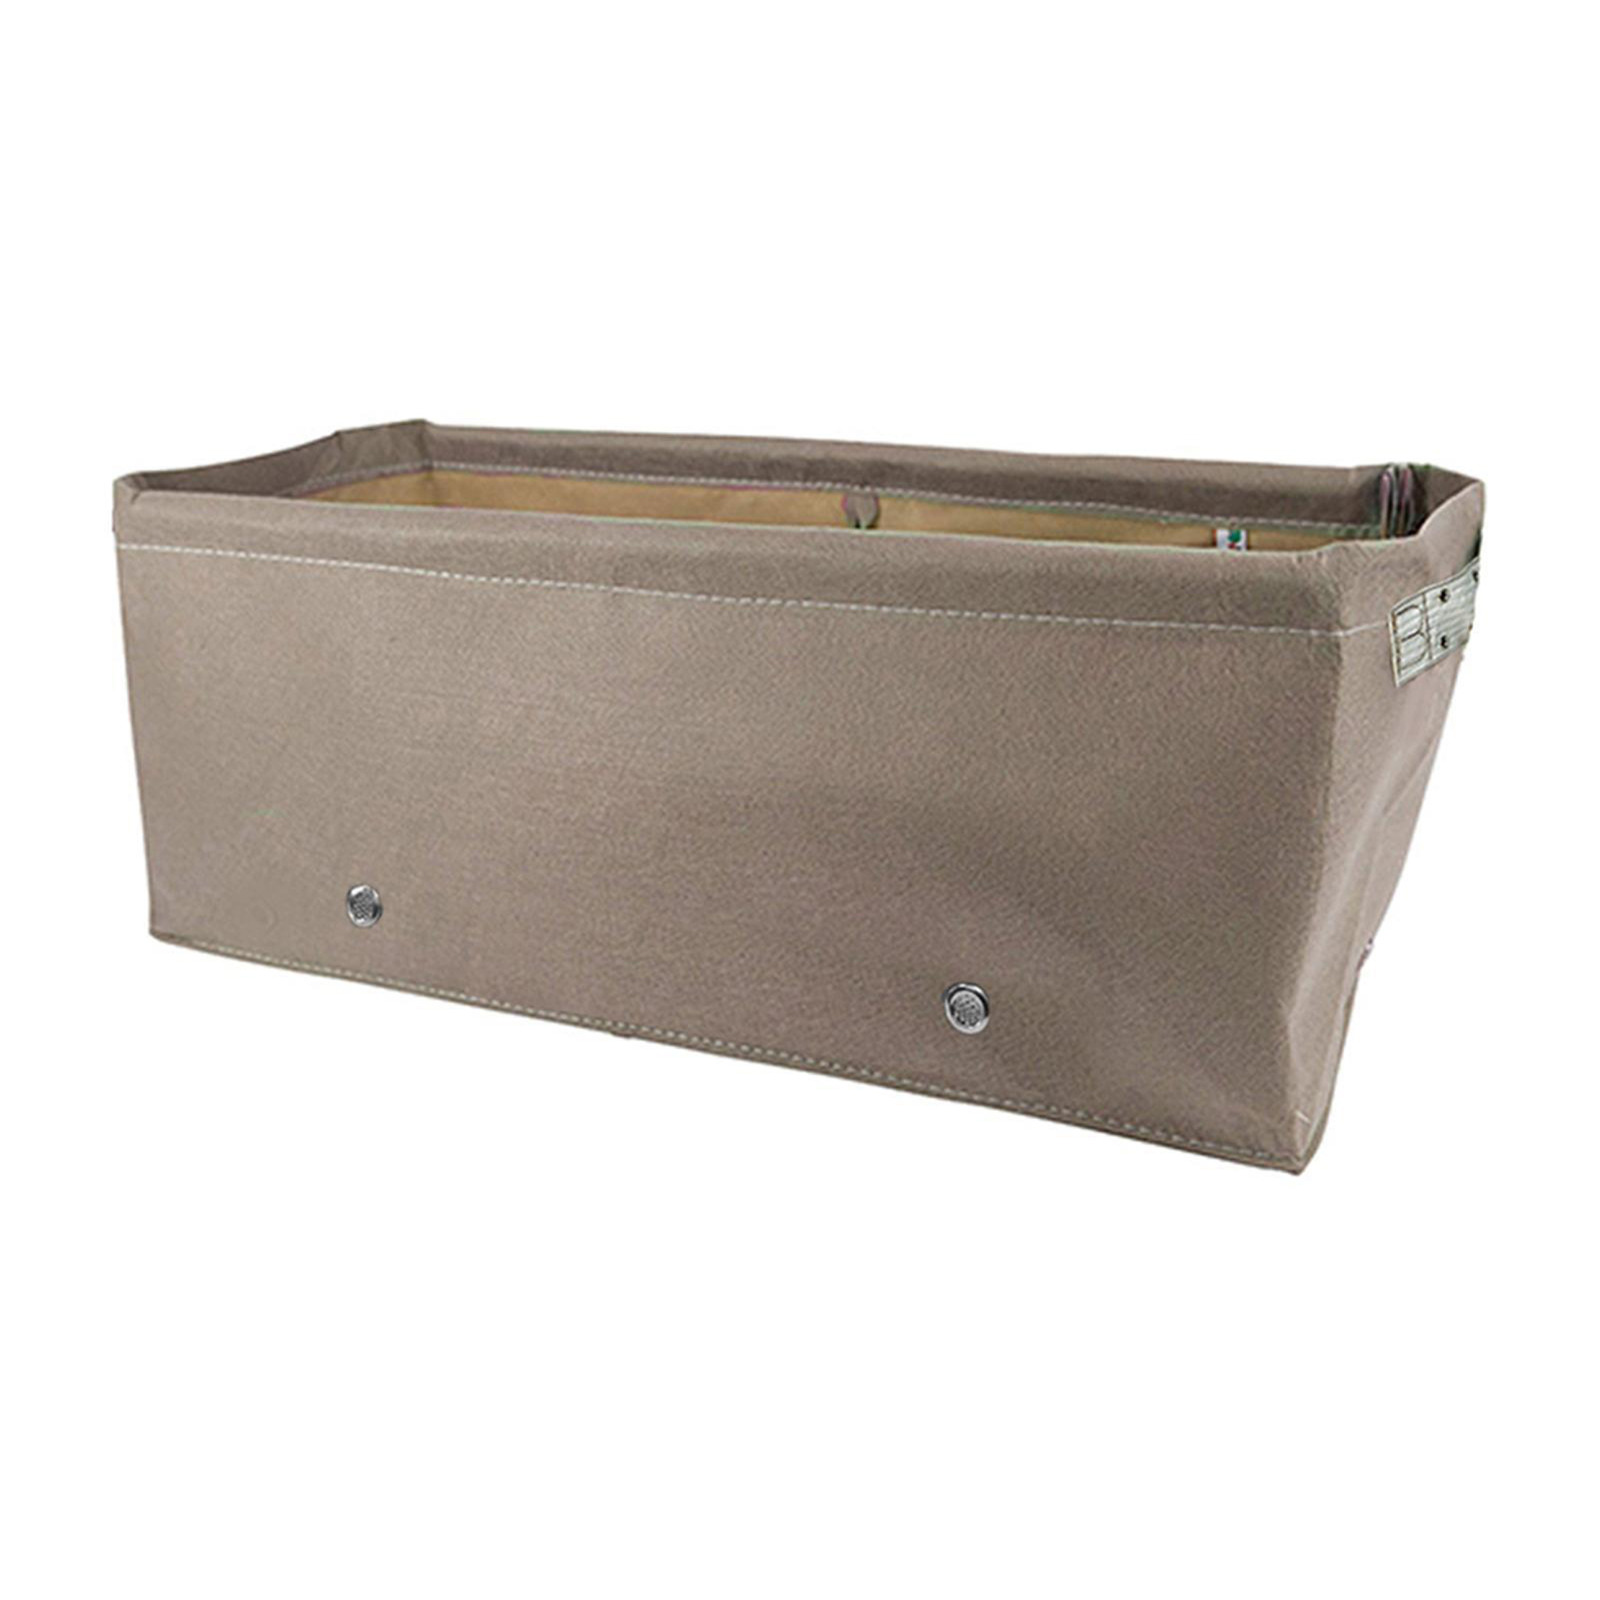 BloomBagz 45L Fabric Raised Bed - Brown (60 X 30 X 25cm)